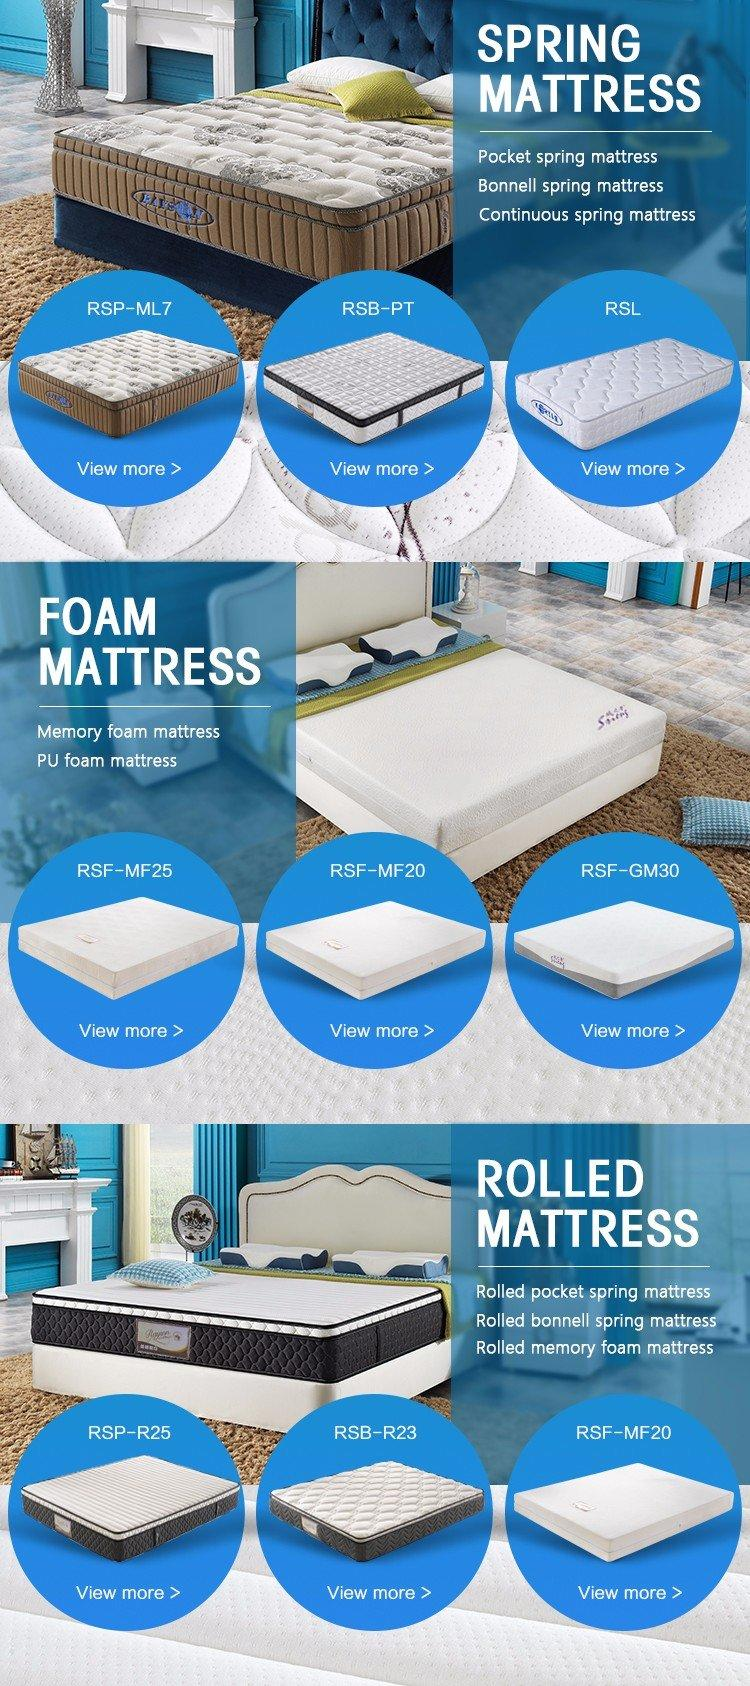 Rayson Mattress super icon mattress manufacturers